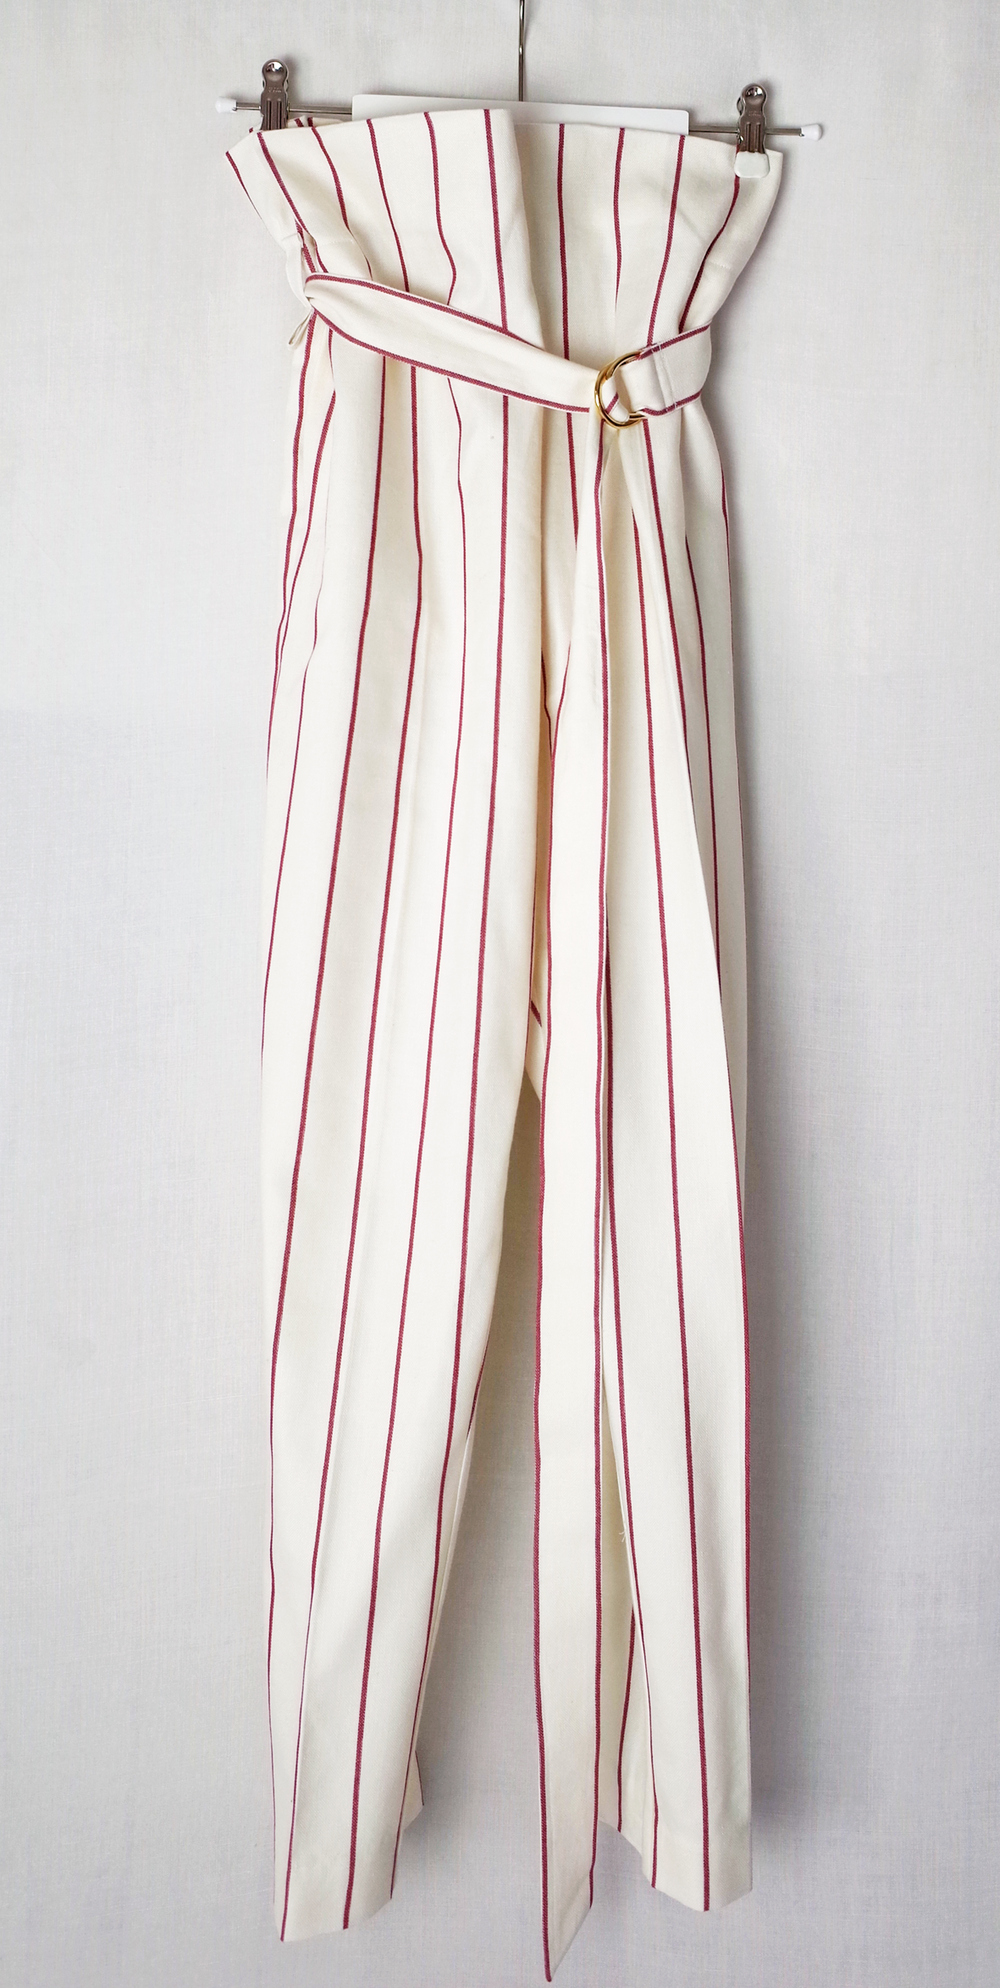 light beige with red stripes//100 % linen